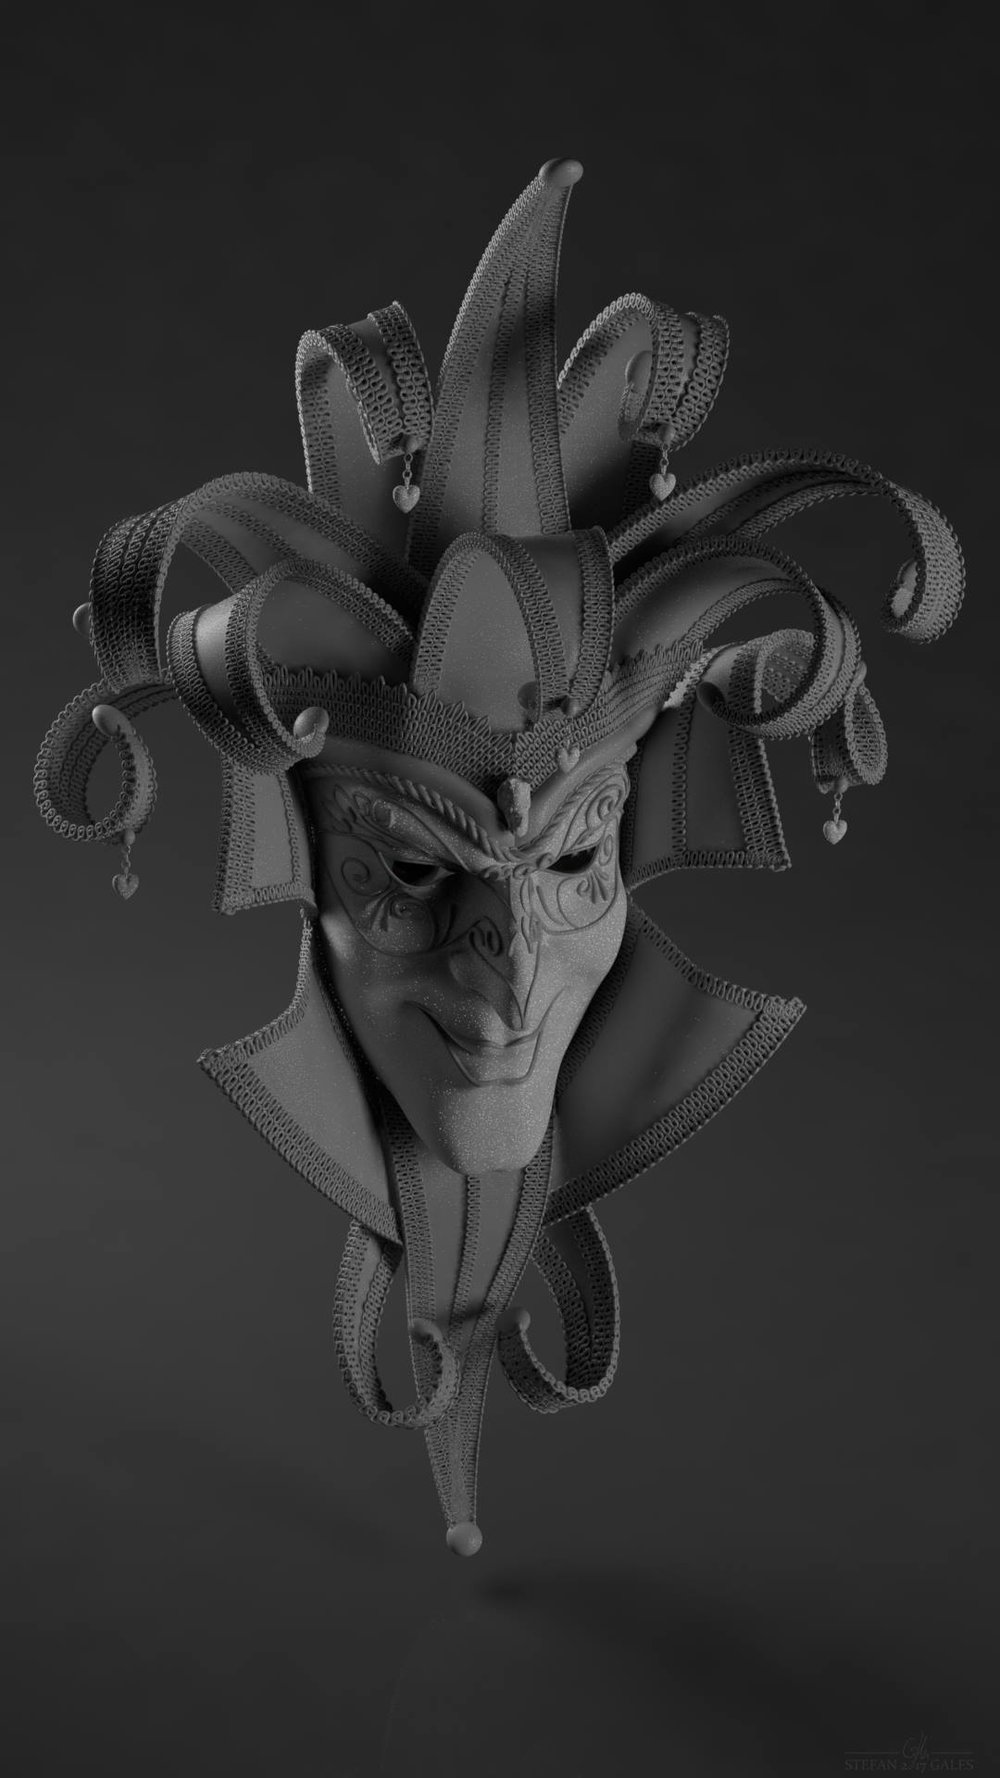 Stefan_Gales_2017_Modo_Mask_Submission_001.jpg